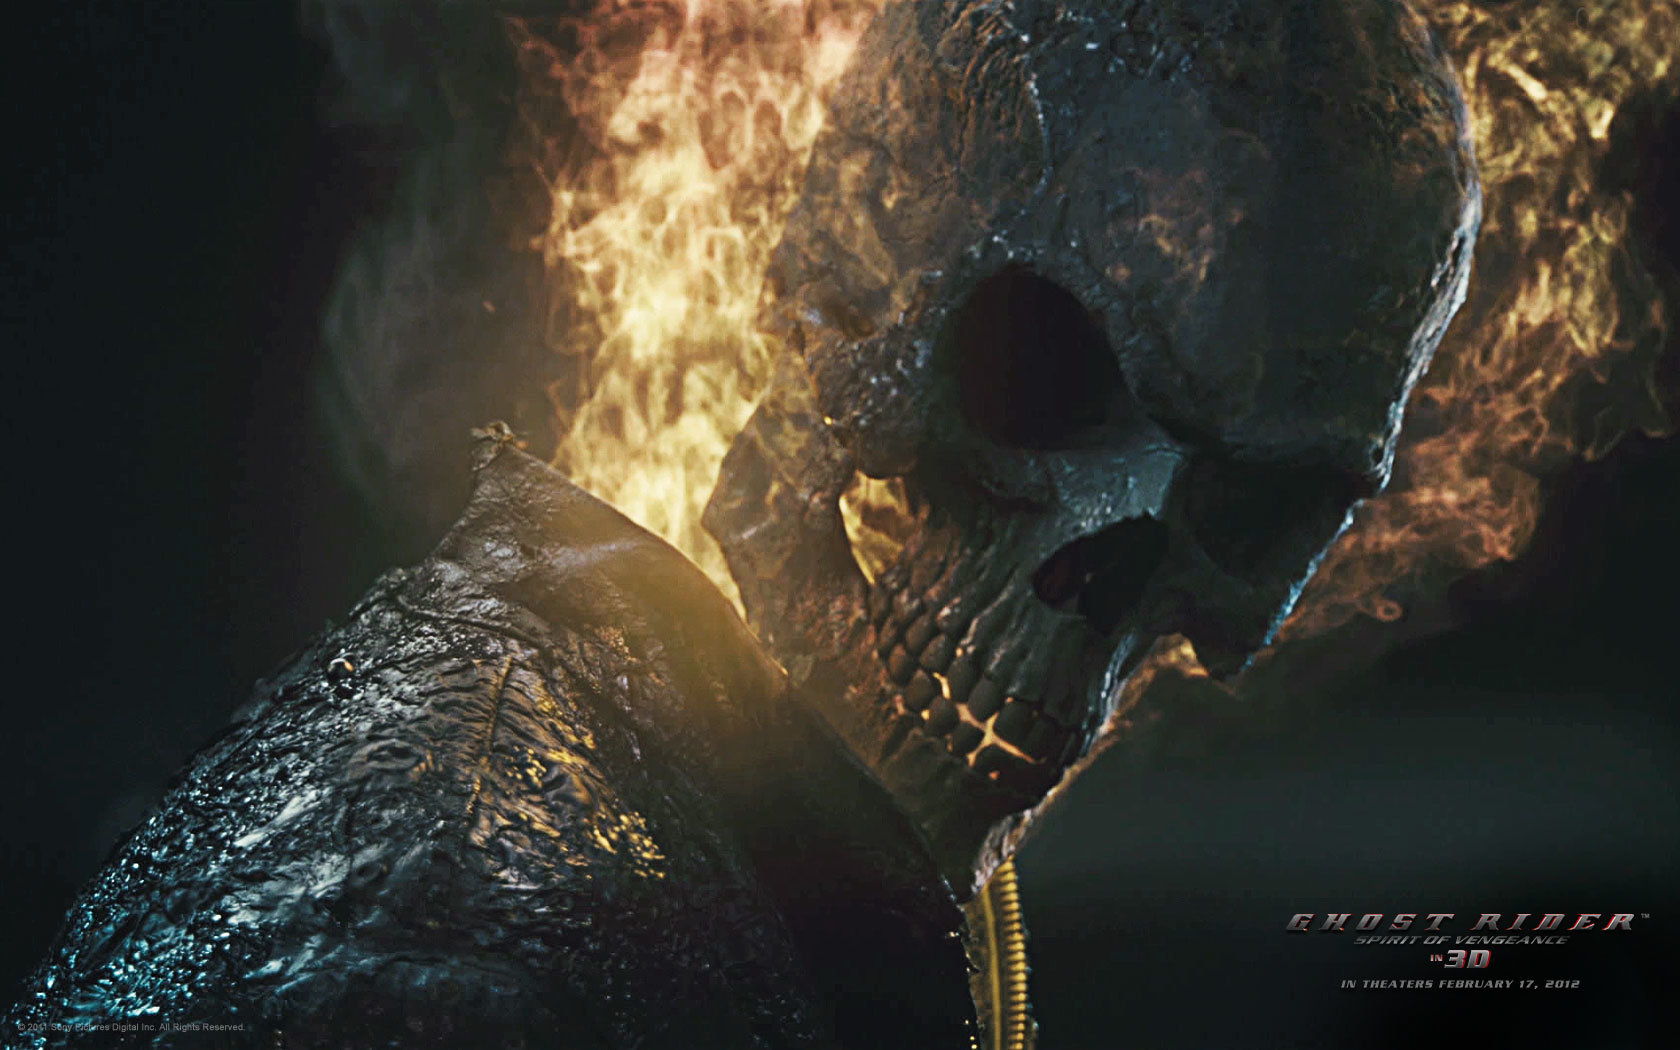 Ghost rider 2: spirit of vengeance (2012) preview | sci-fi movie.